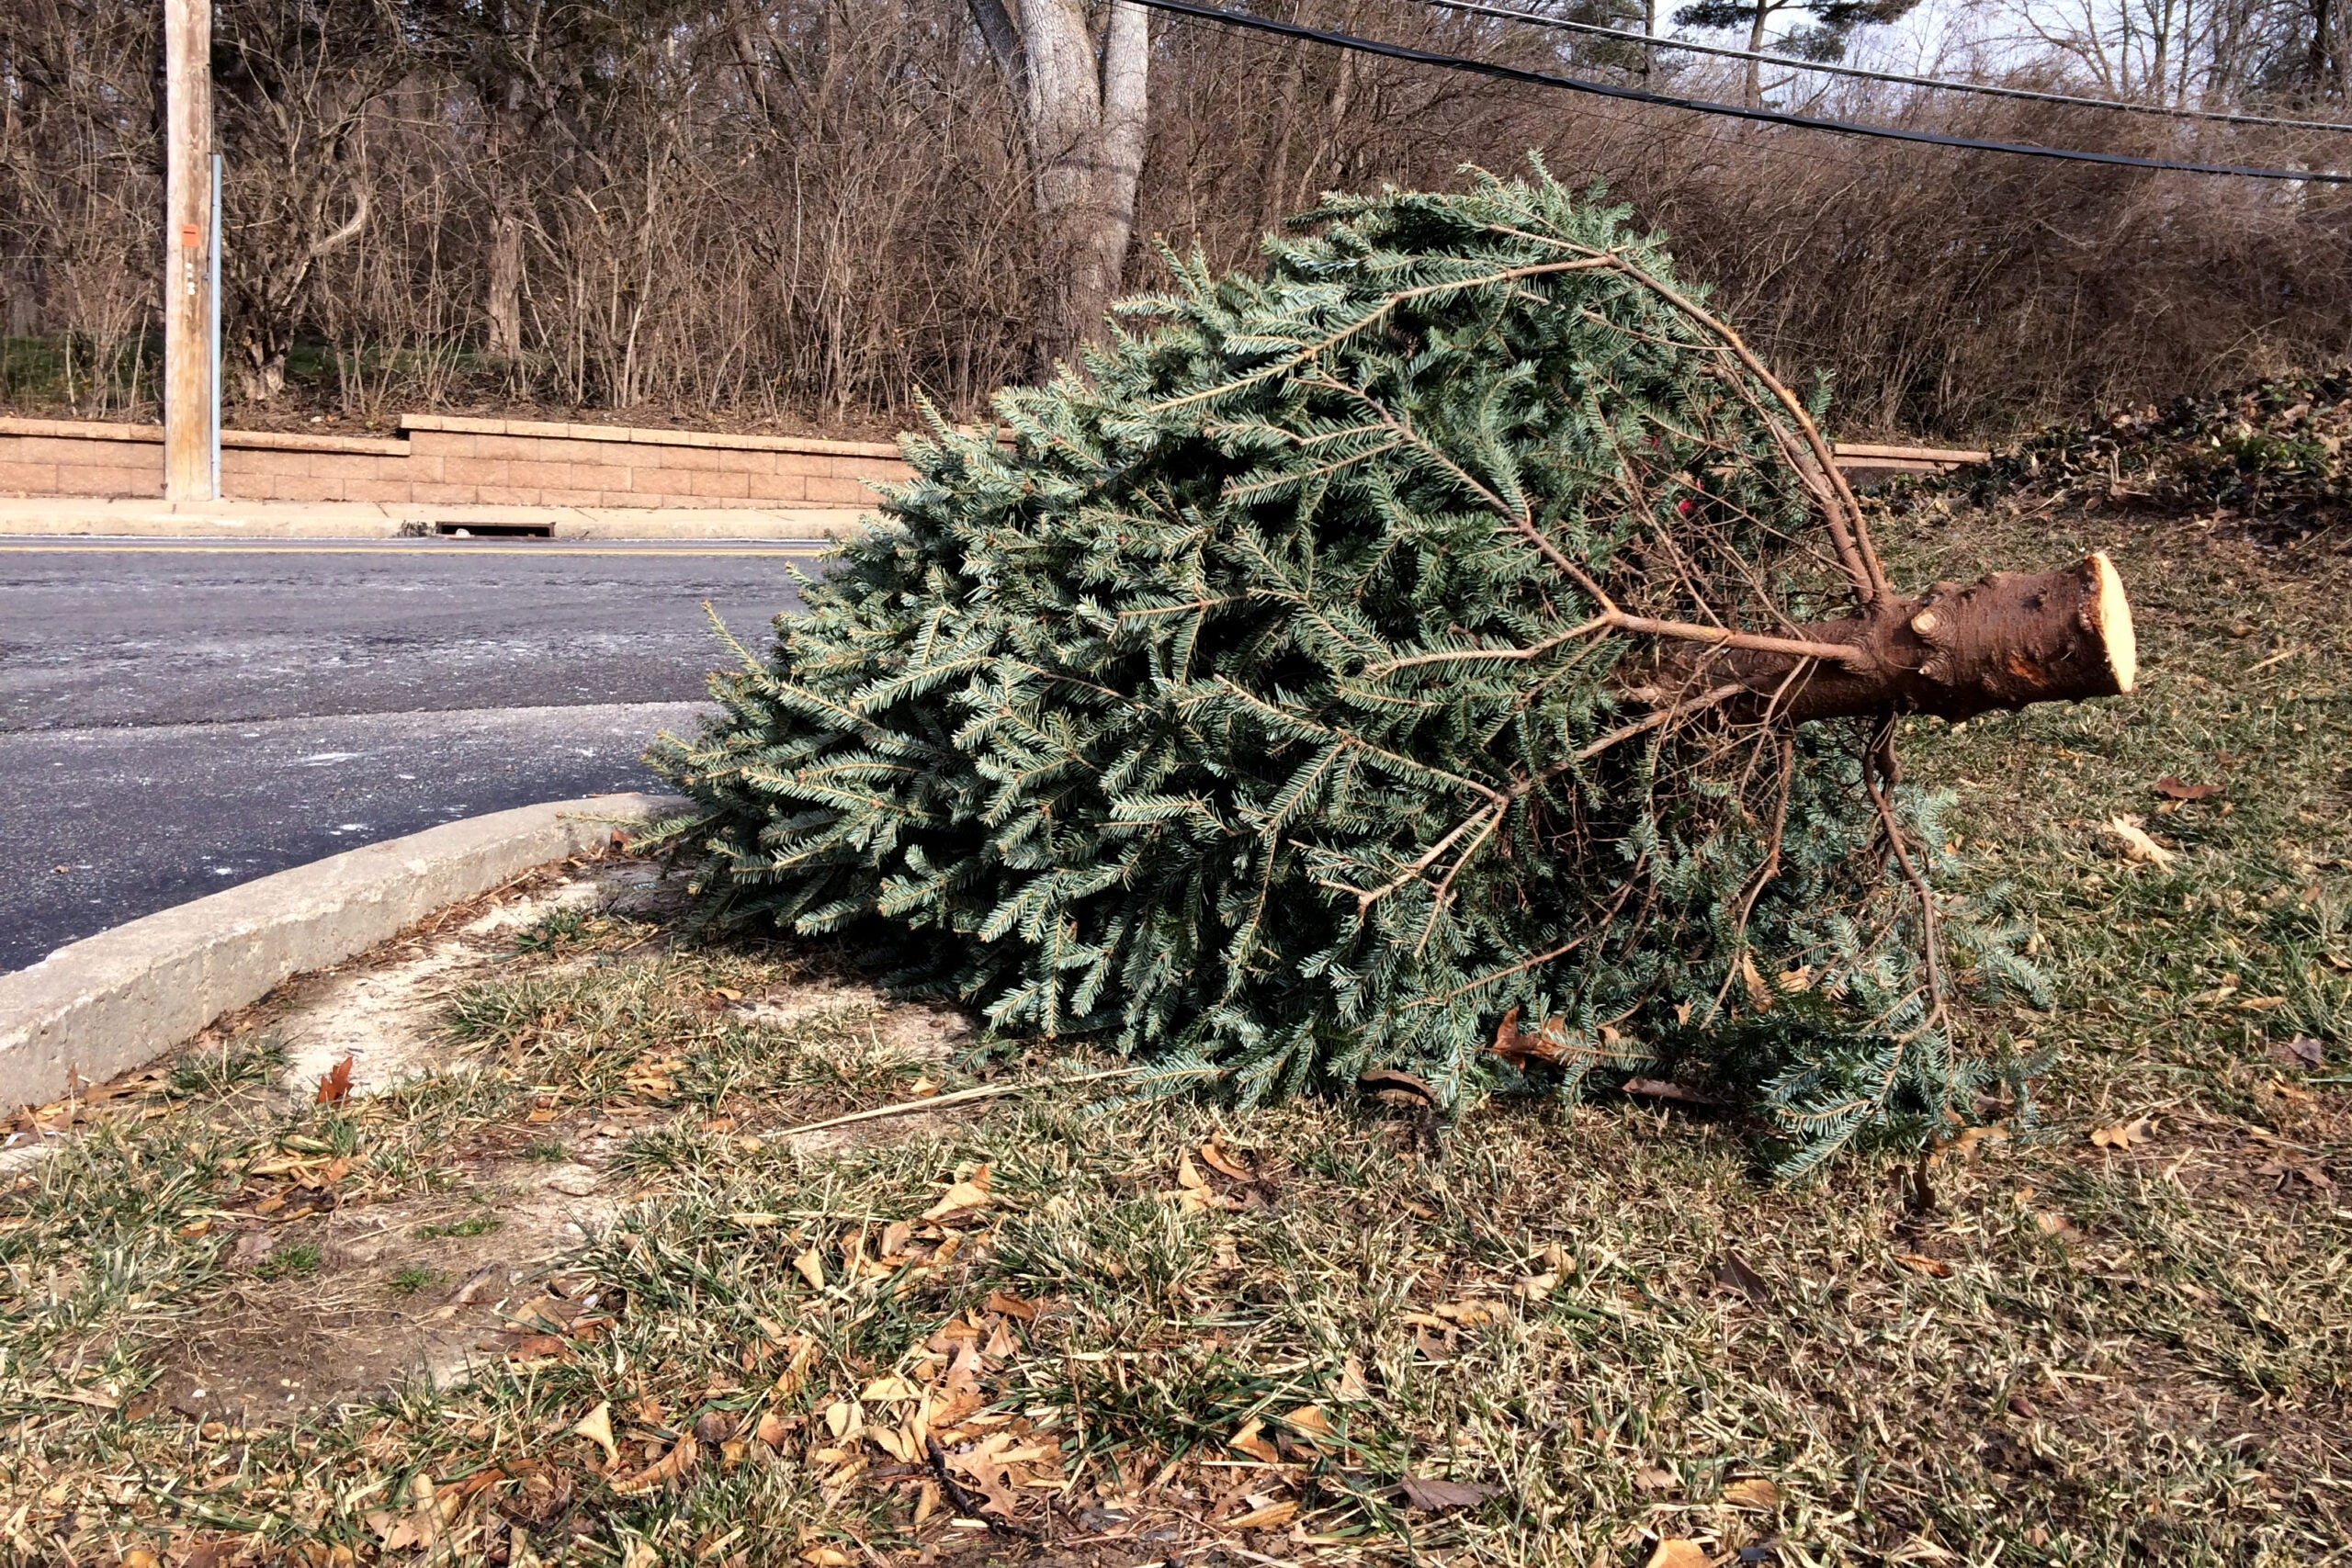 5 Survival Uses for a Recycled Christmas Tree